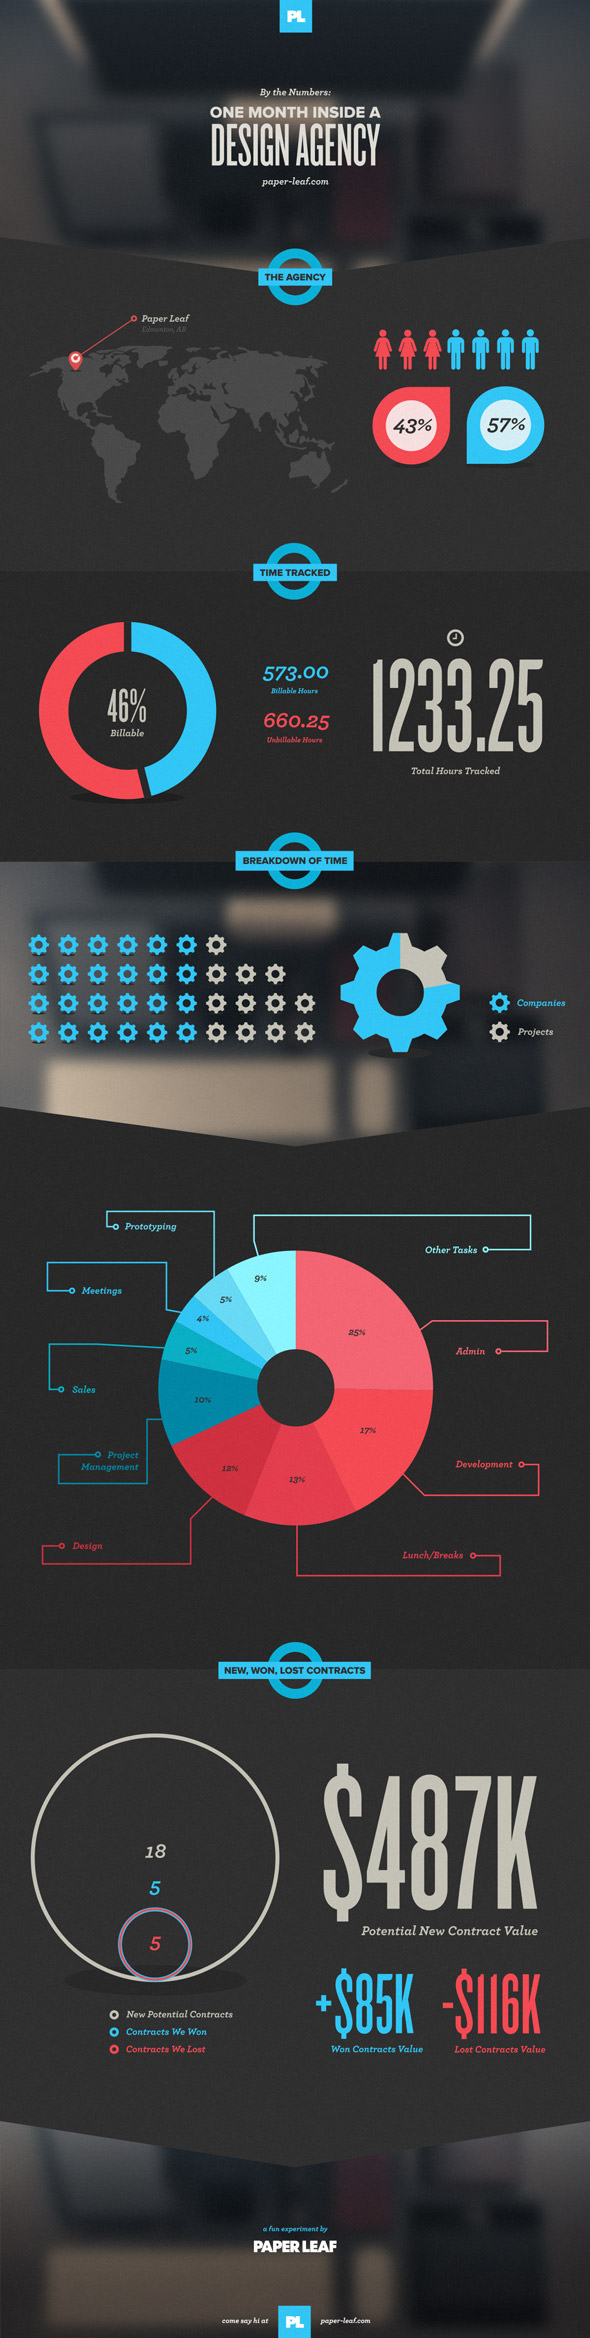 design agency infographic